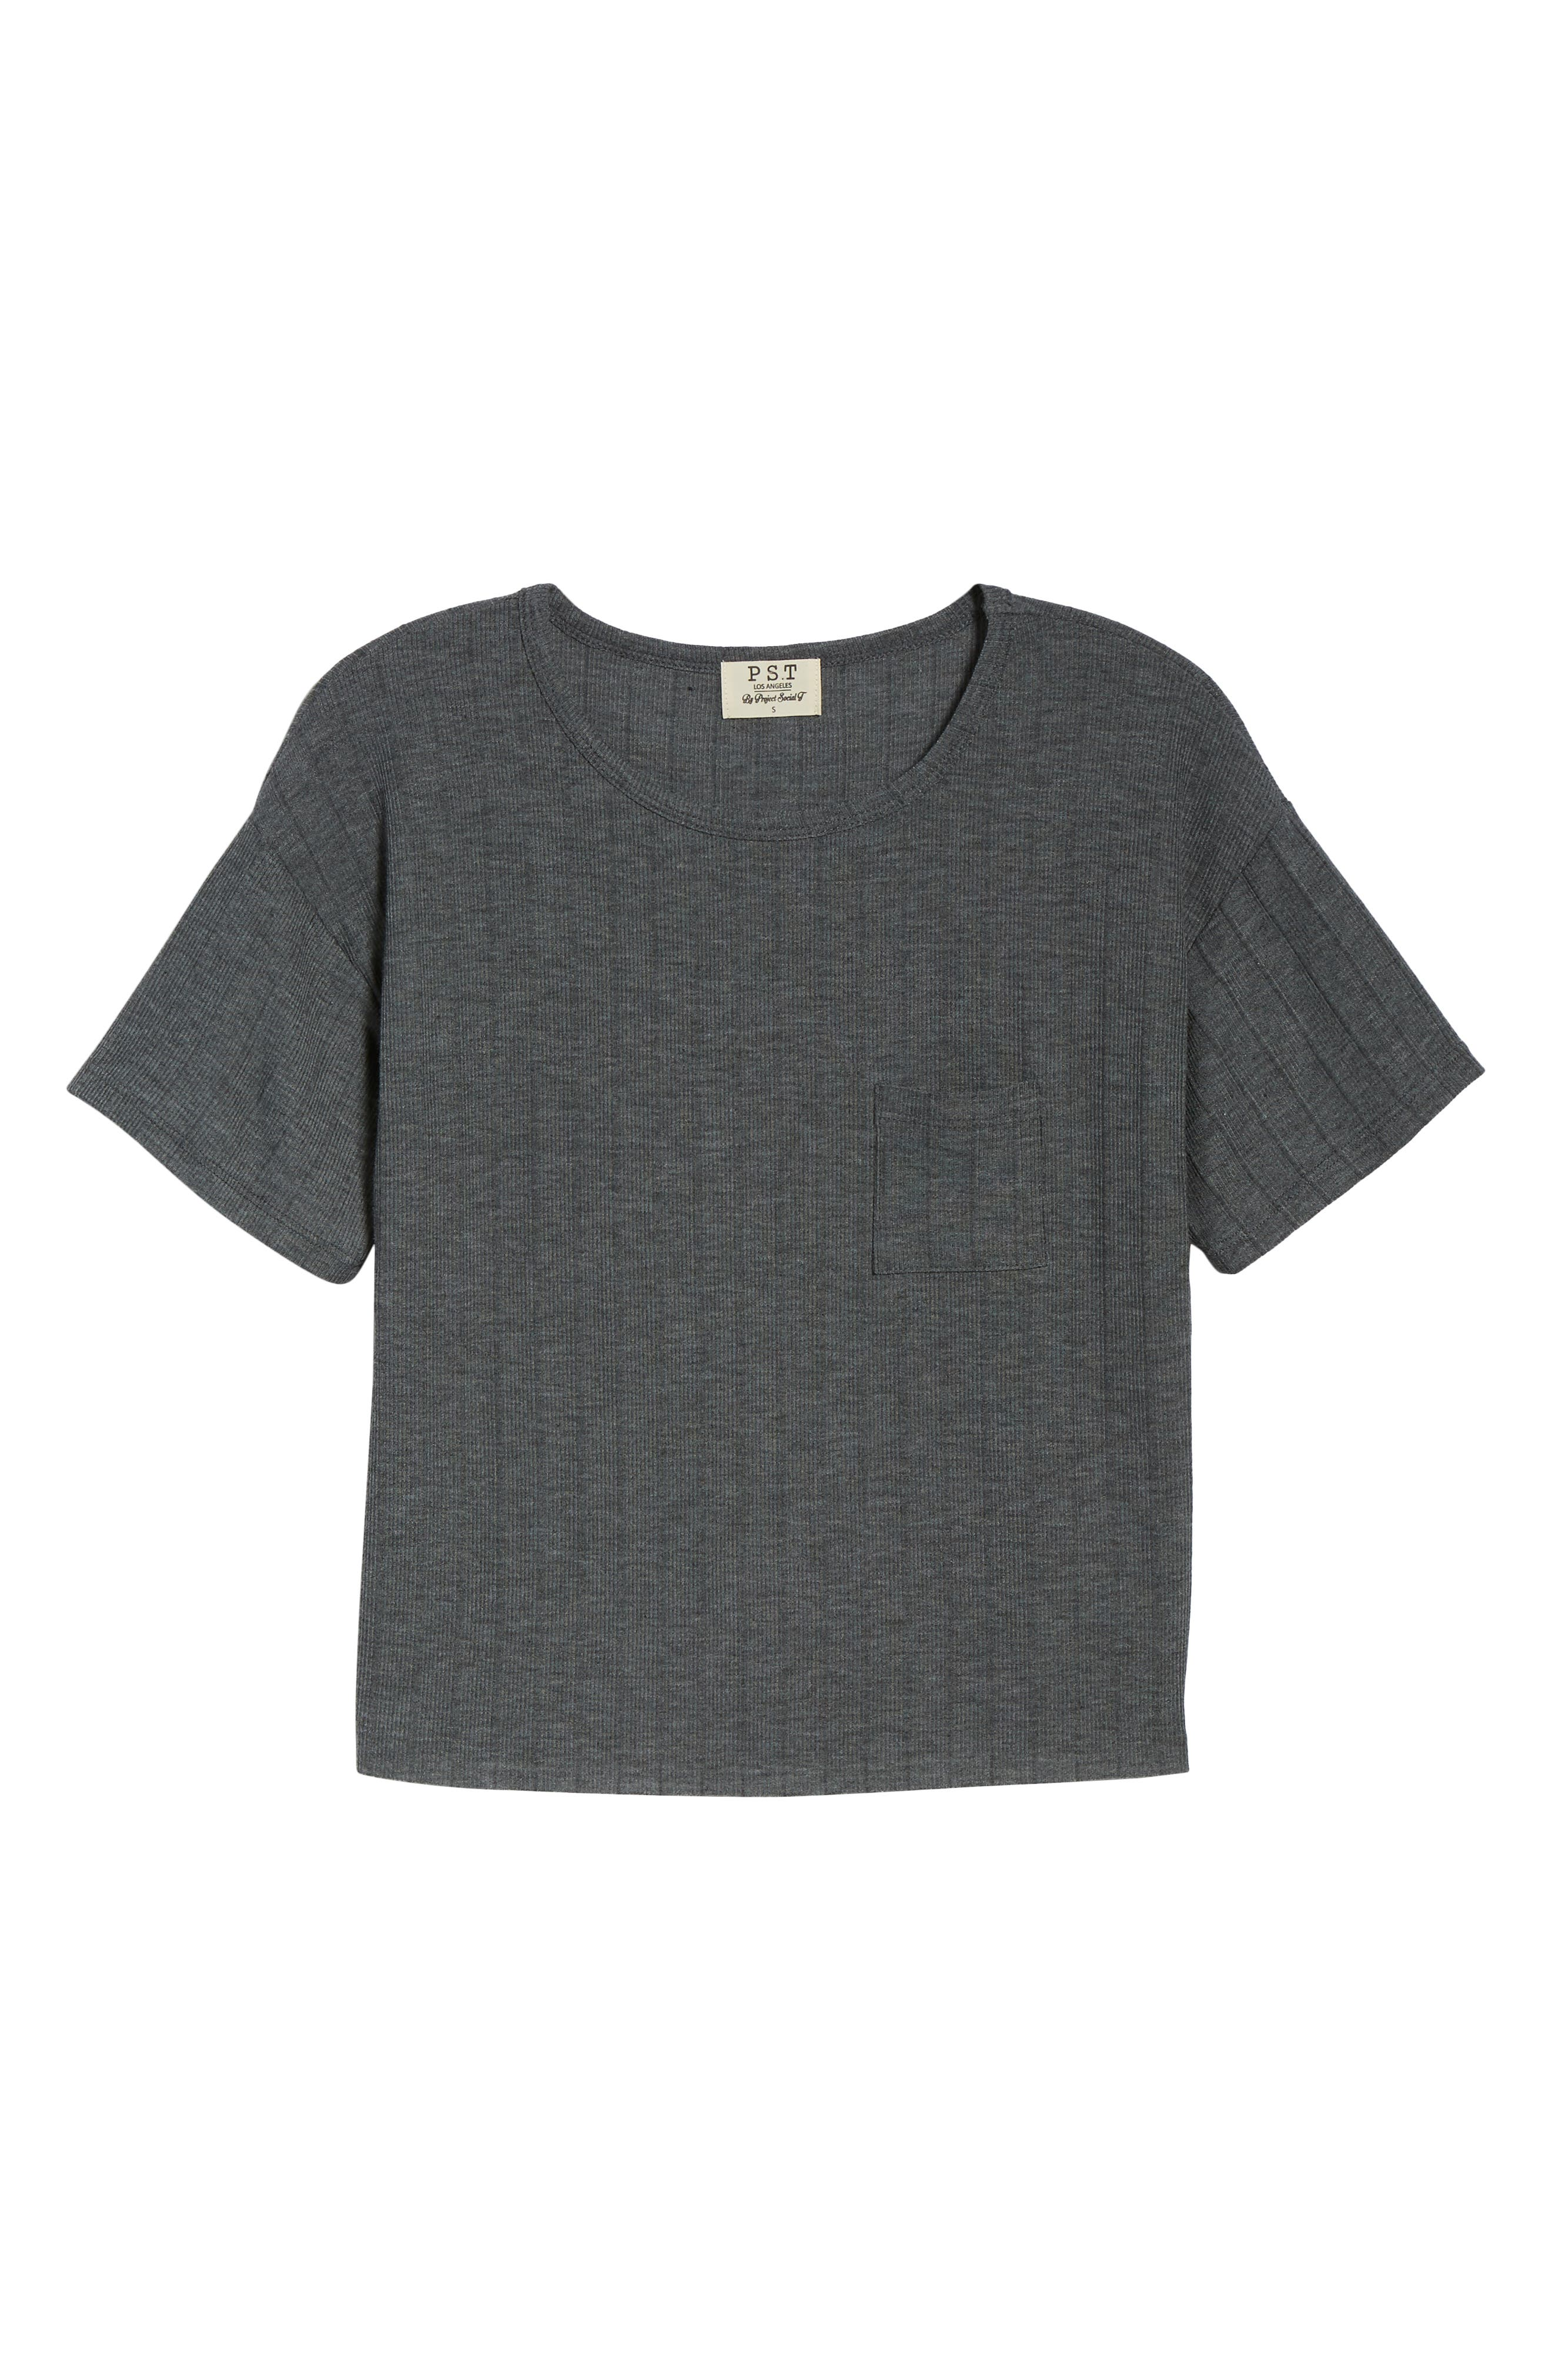 Variegated Rib Knit Tee,                             Alternate thumbnail 6, color,                             CHARCOAL